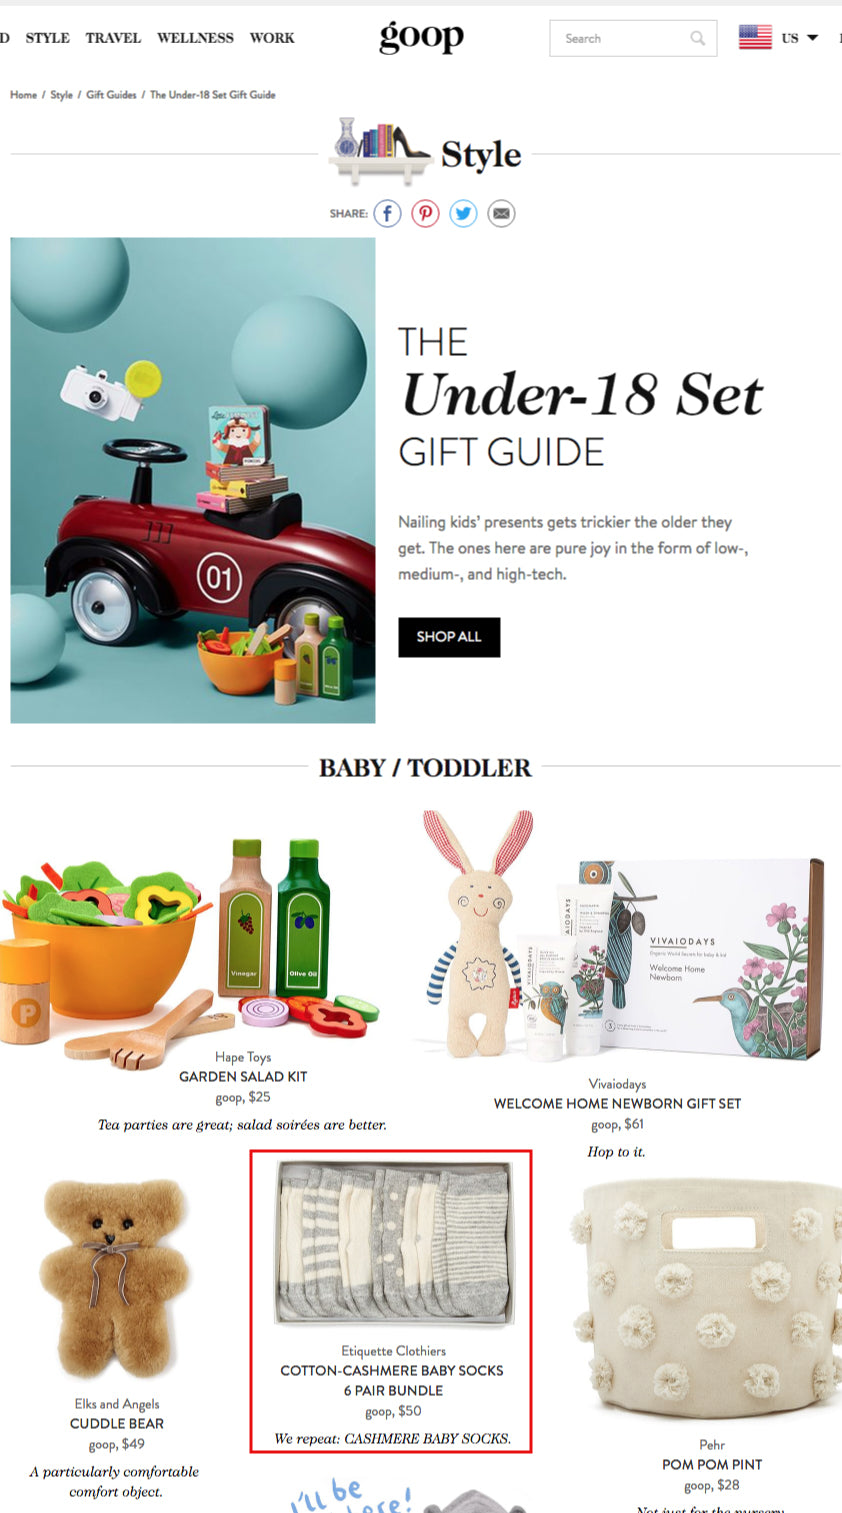 Goop: The Under-18 Set Holiday Gift Guide